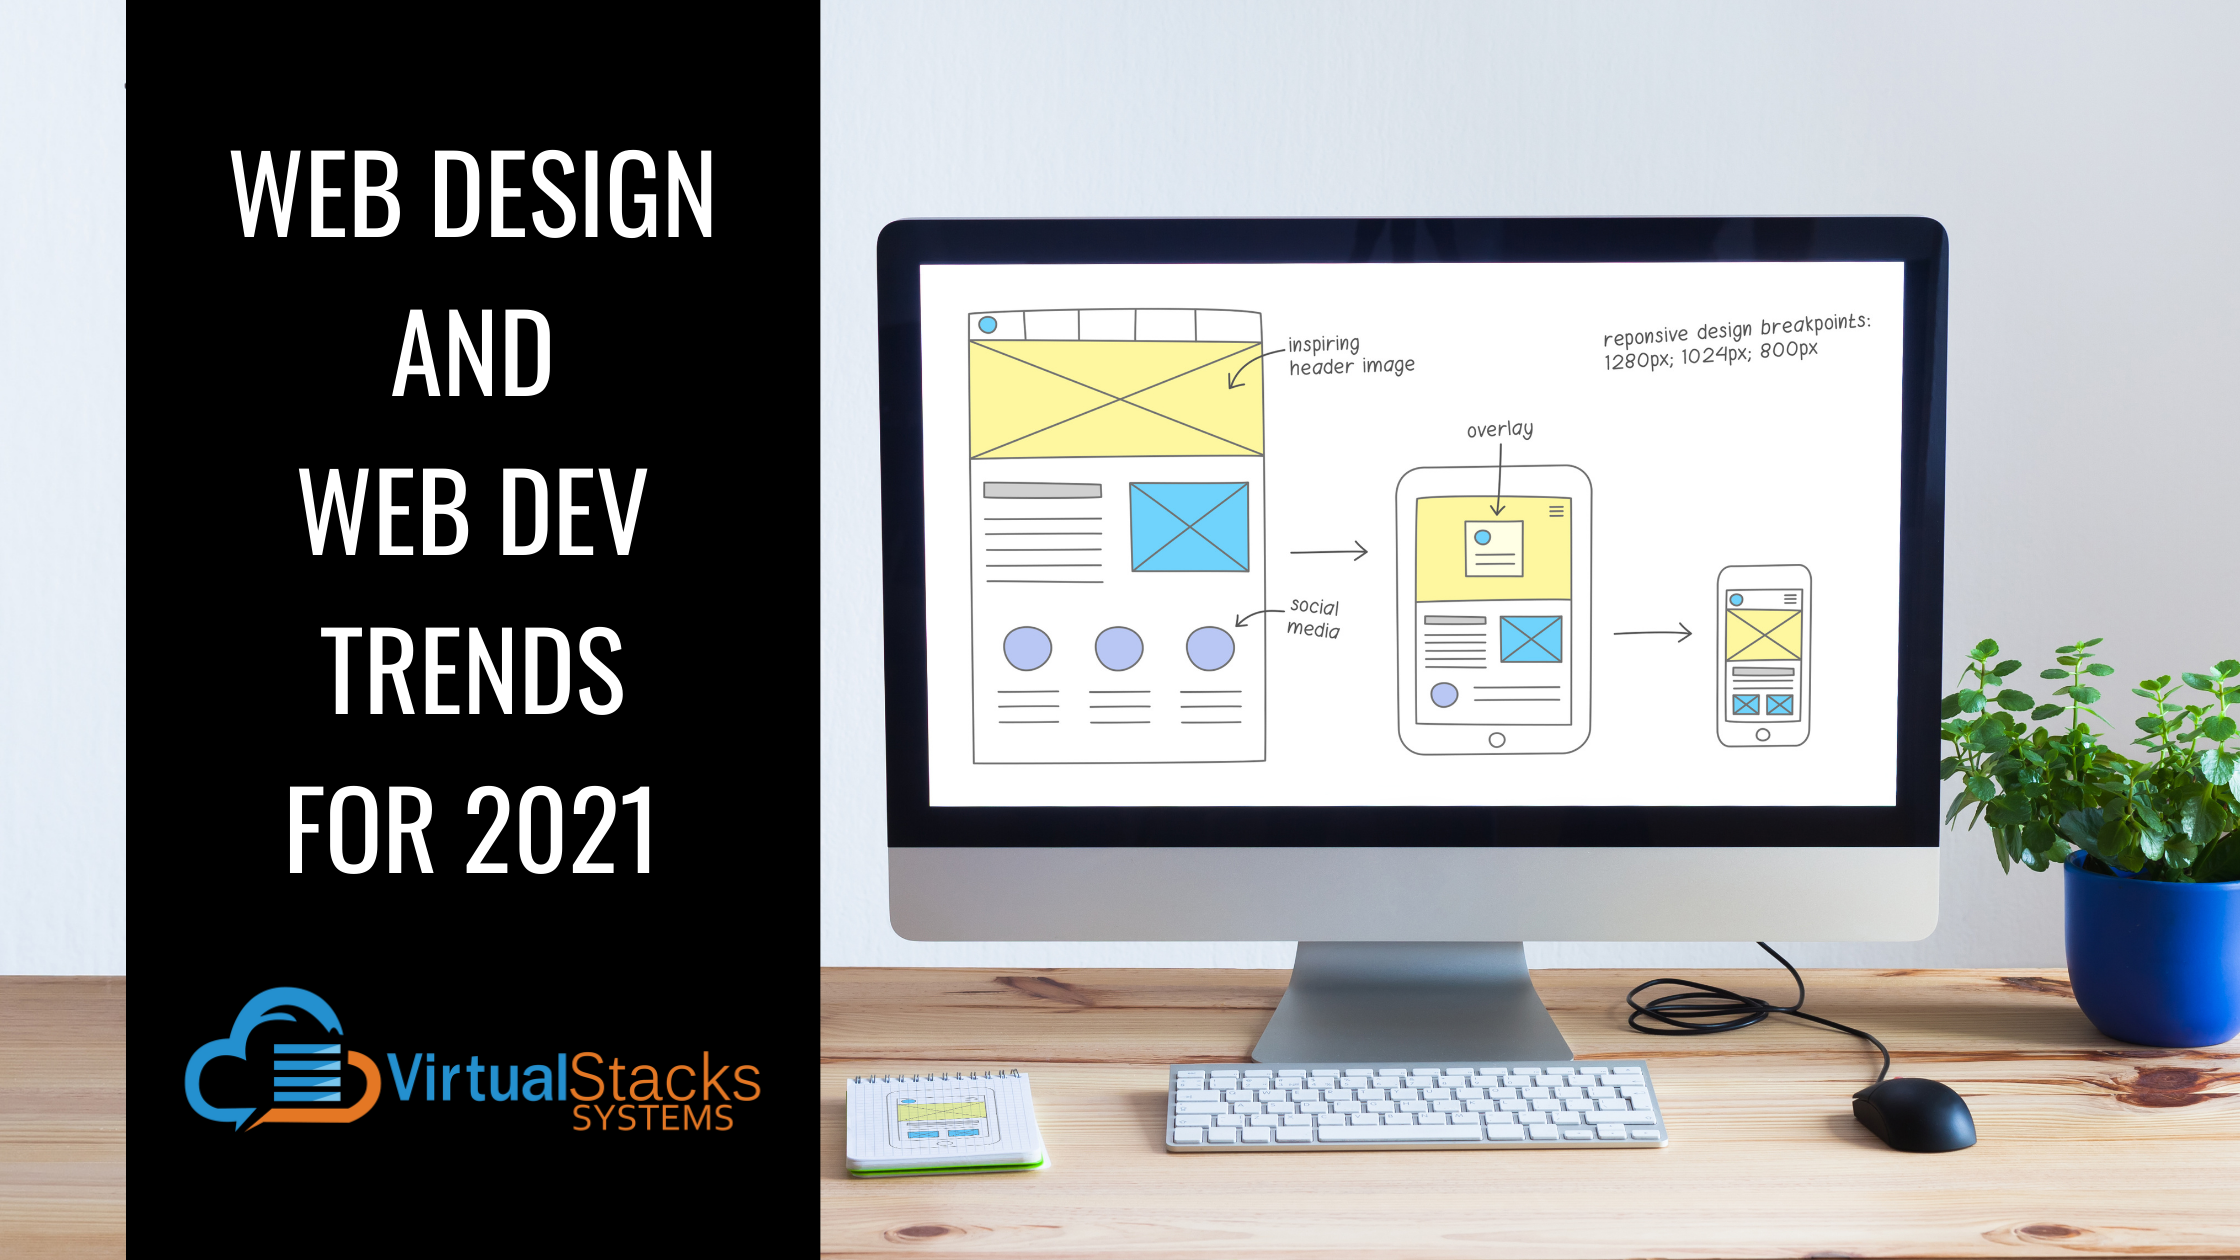 Web Design and Web Dev Trends for 2021